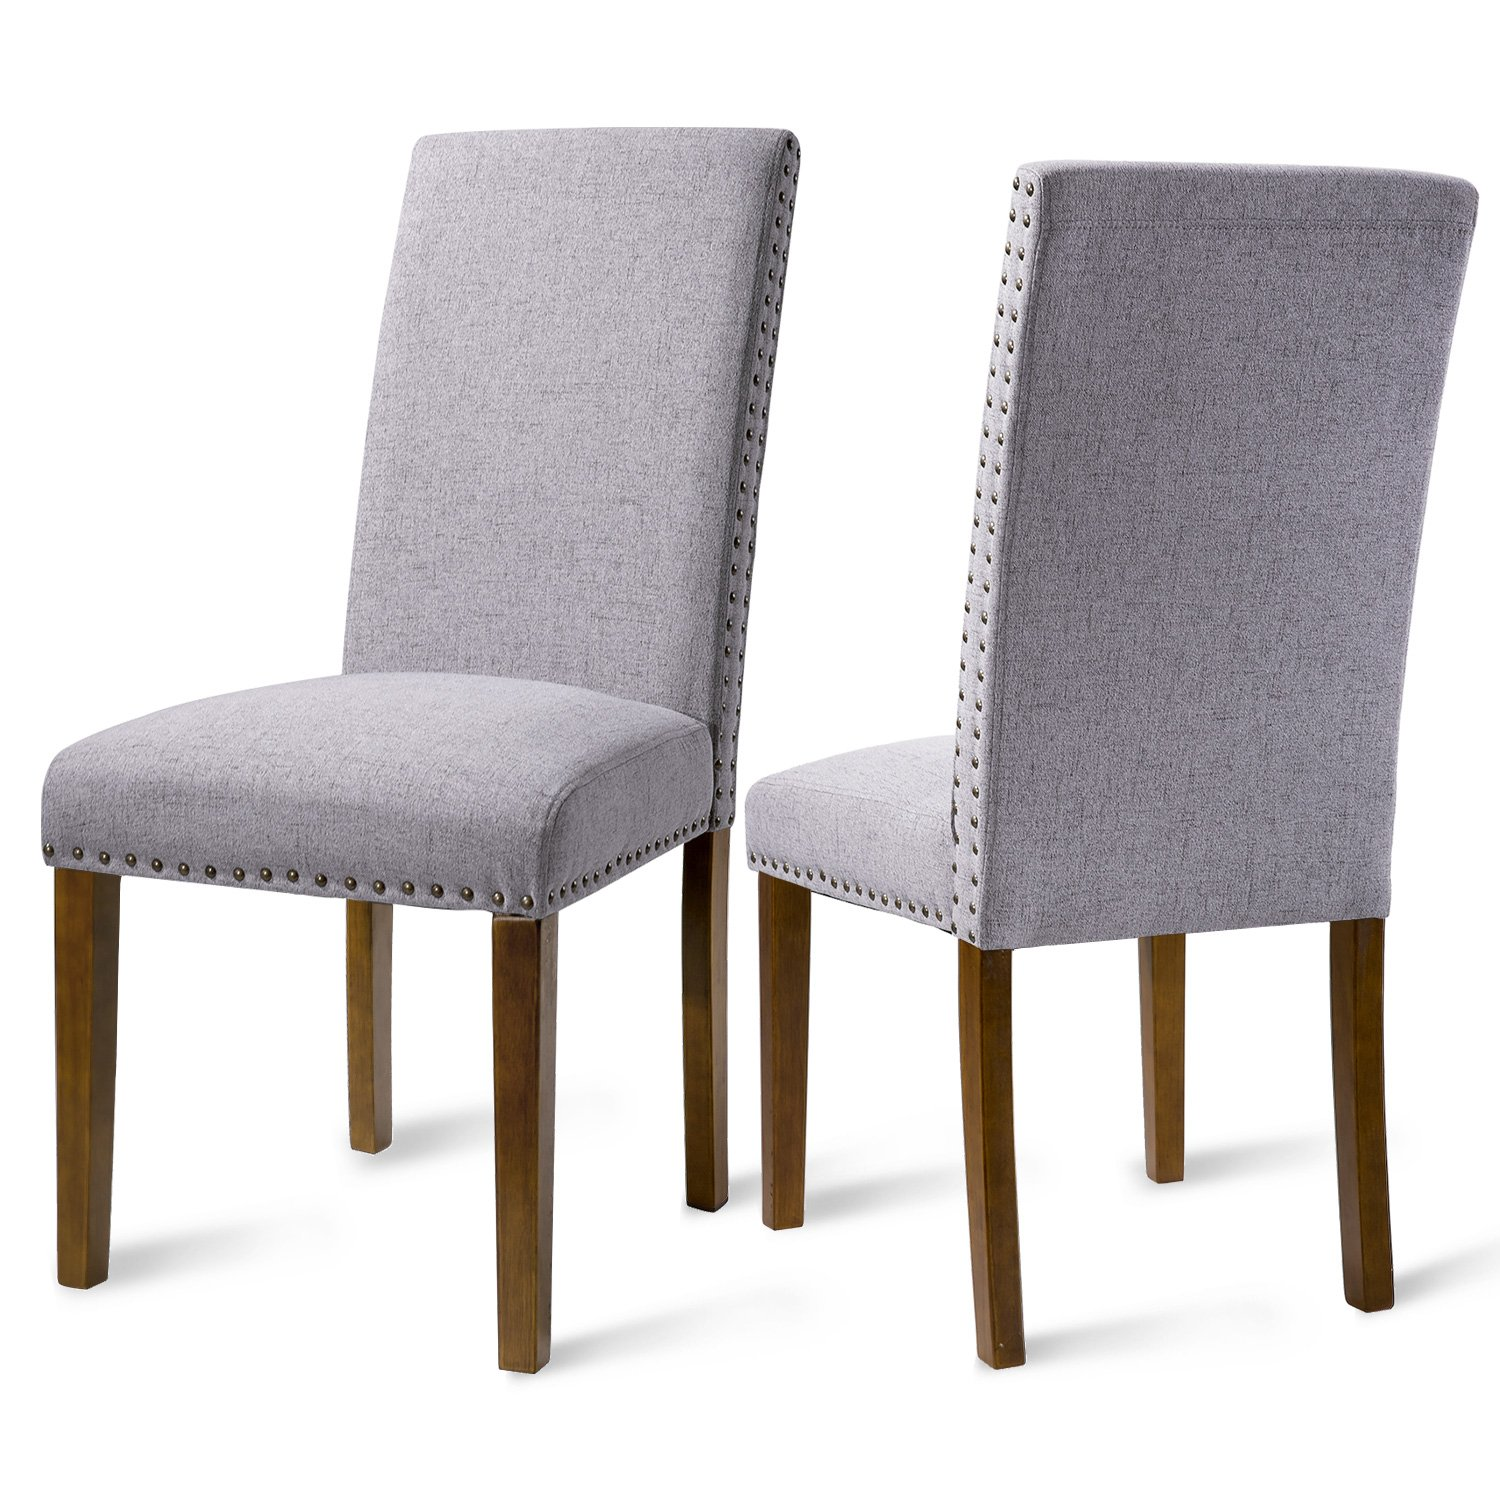 Merax PP036415 Set of 2 Fabric Dining Chairs with Copper Nails and Solid Wood Legs by Merax (Image #1)